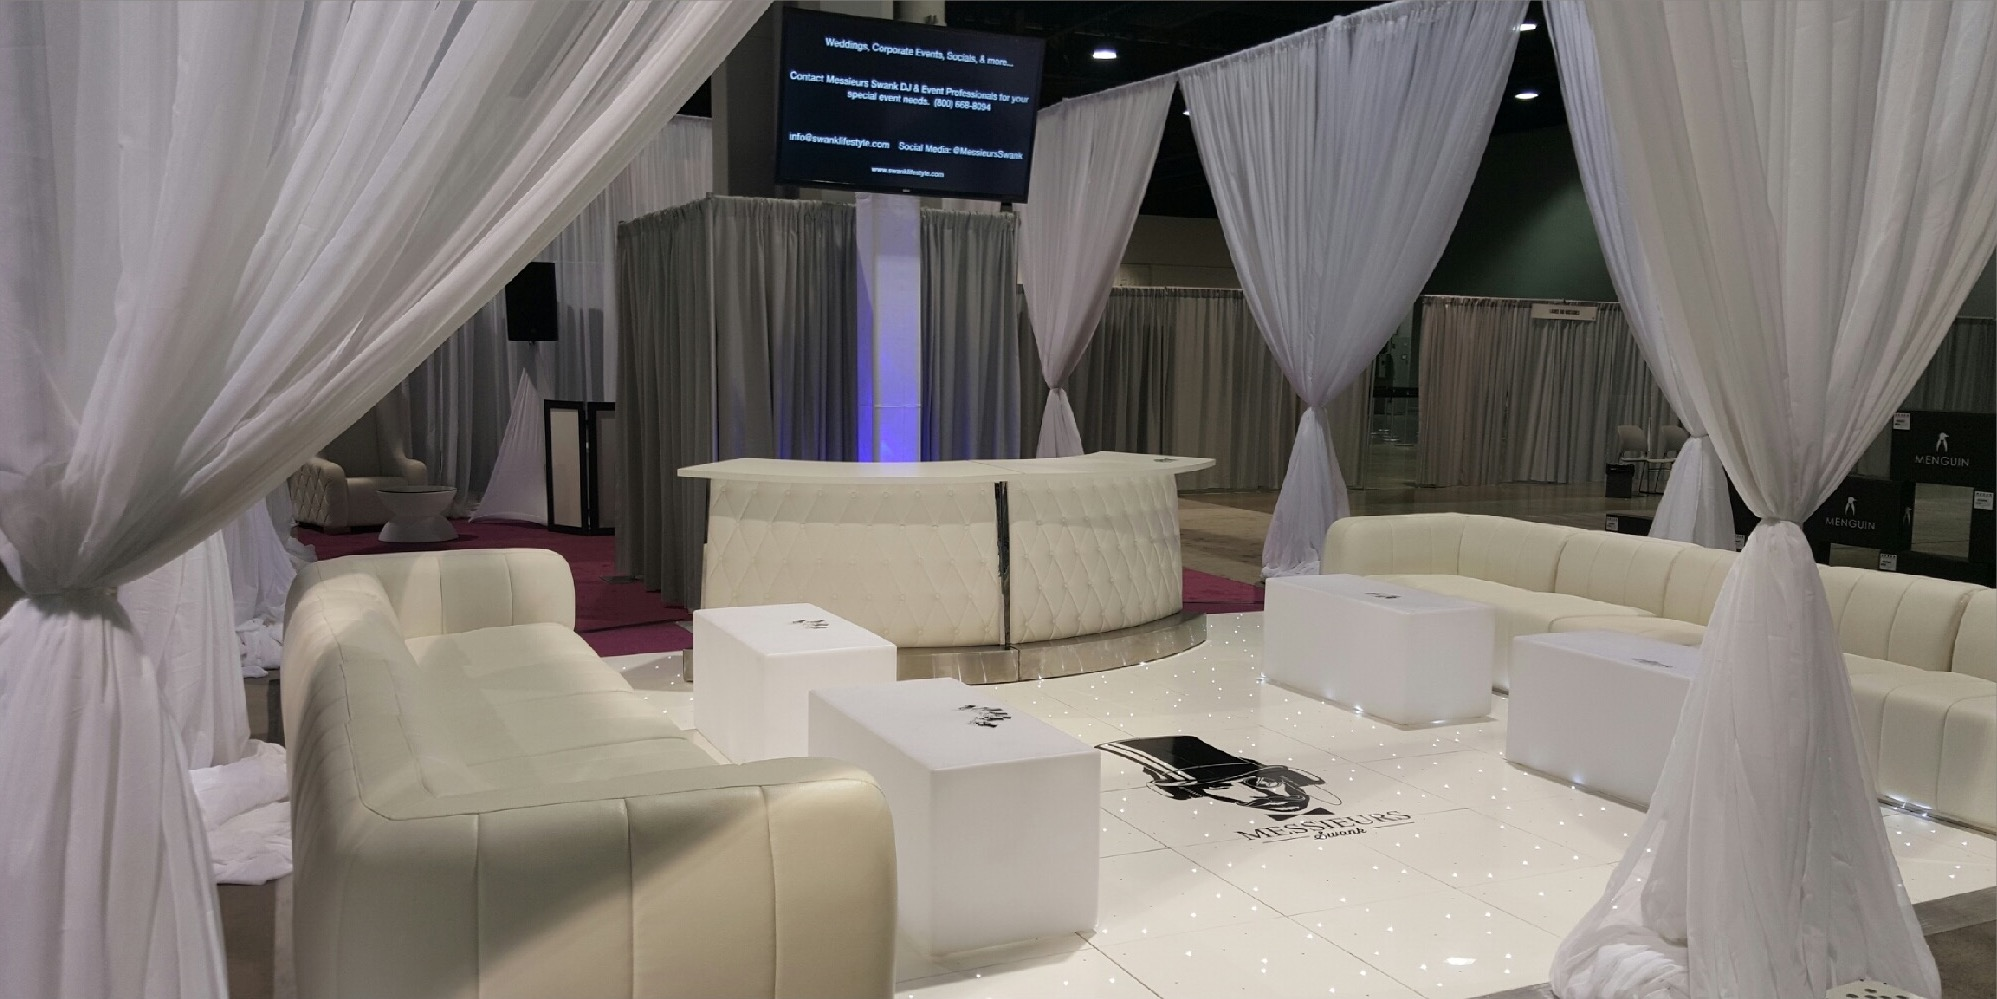 Bring us your ideas and let us help you execute them. Whether your plans call for celebrating company milestones, music, sports, and lifestyle themed events, or any of life's special occasion, Messieurs Swank can deliver bespoke services to help make your event a success. Contact us for details. -